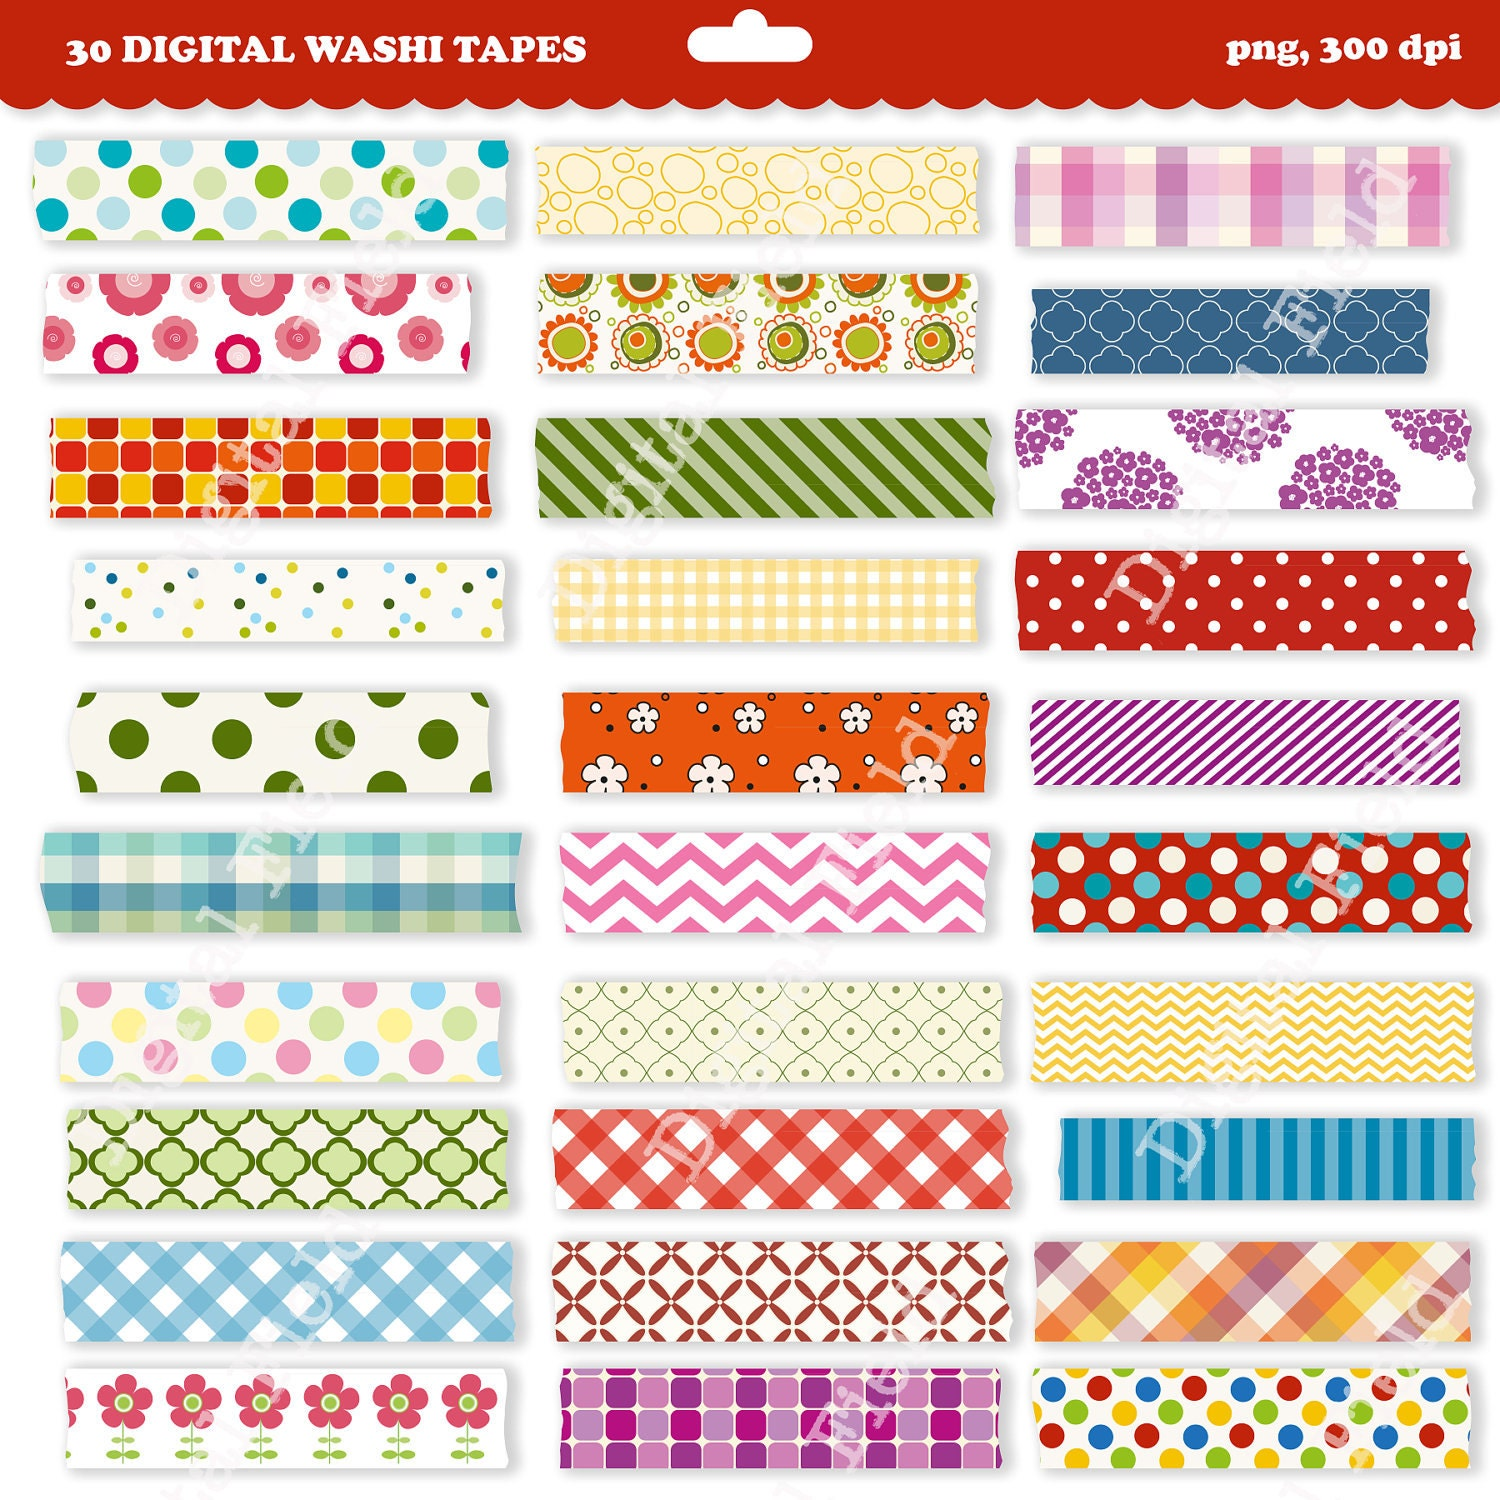 1000 images about printable washi tape on pinterest washi tape digital papers and washi tape. Black Bedroom Furniture Sets. Home Design Ideas